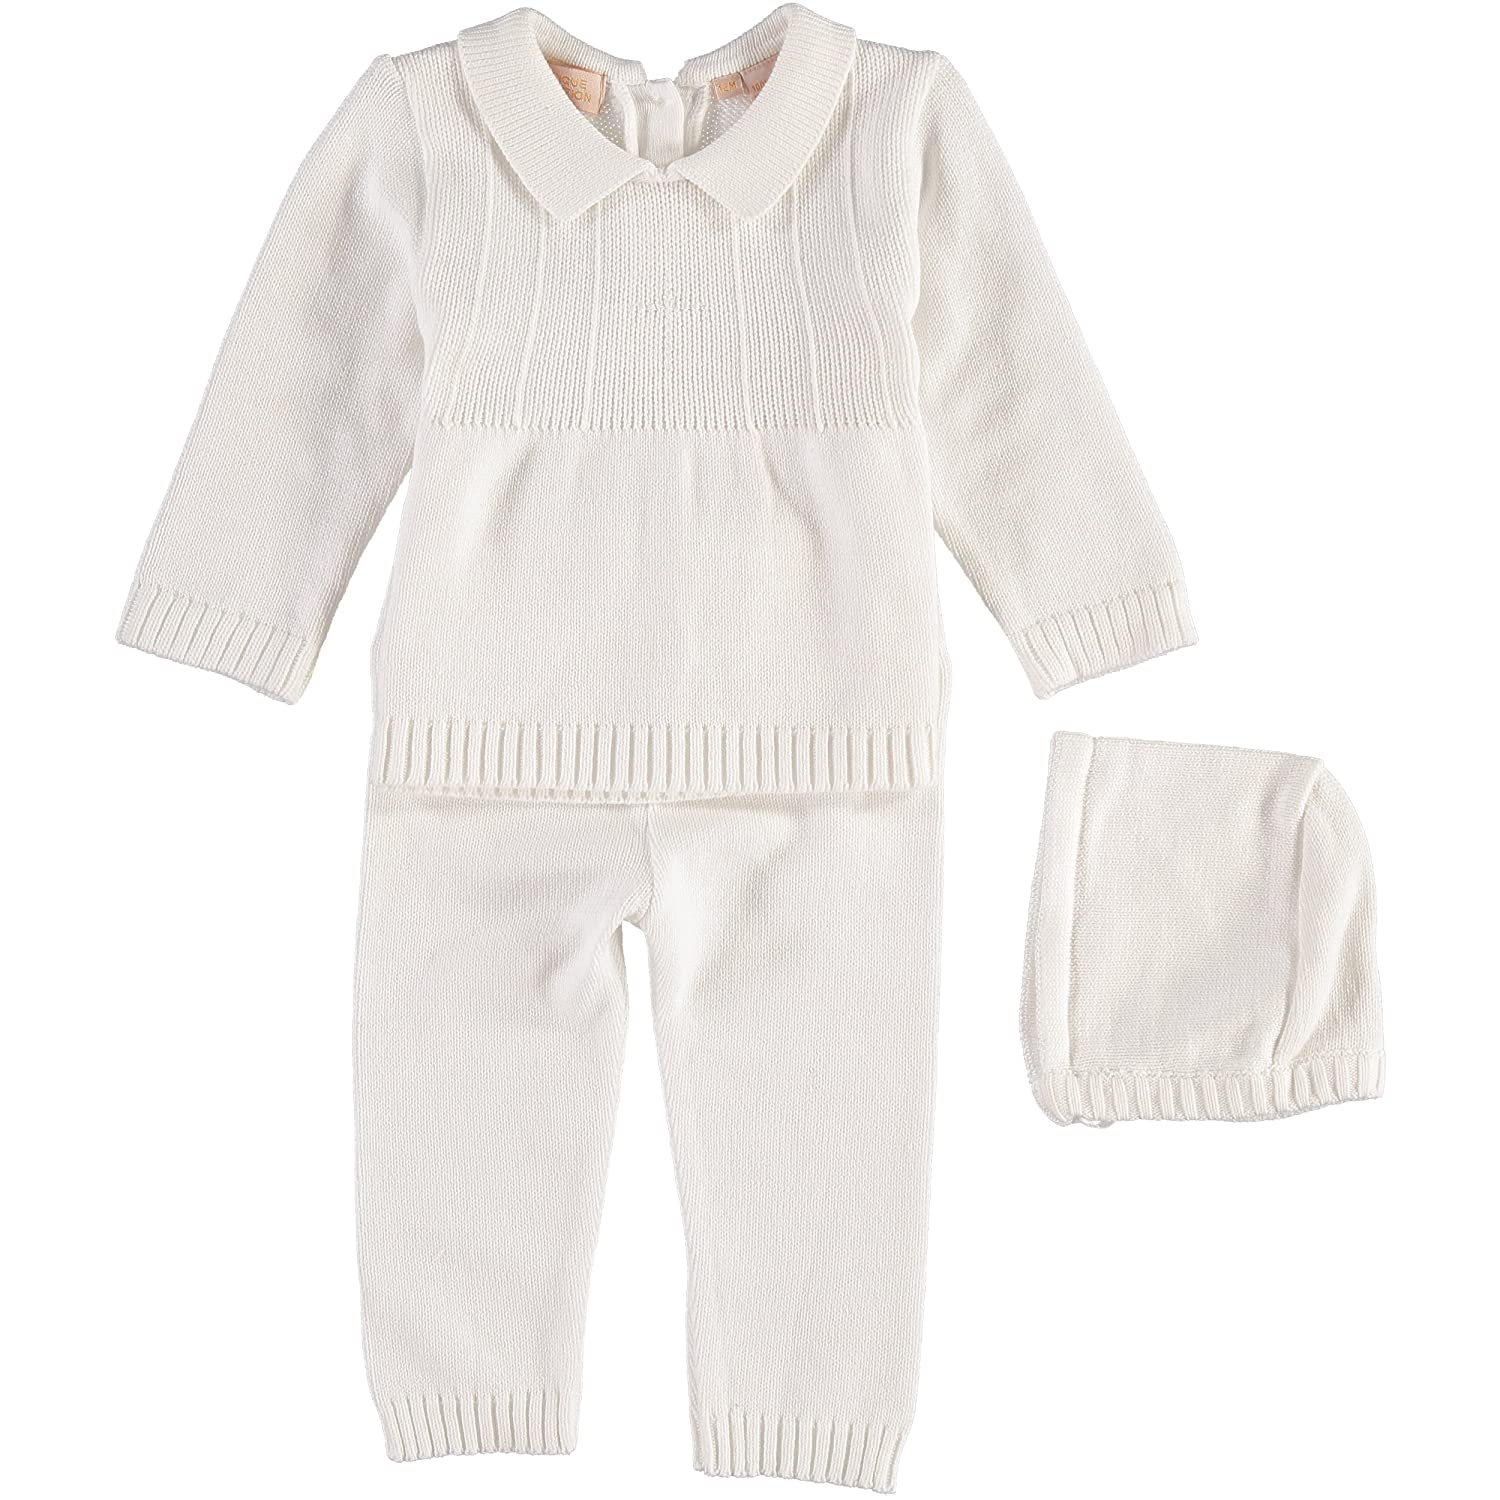 Boutique Collection White Knitted Christening 2 Piece Outfit with Cross Detail